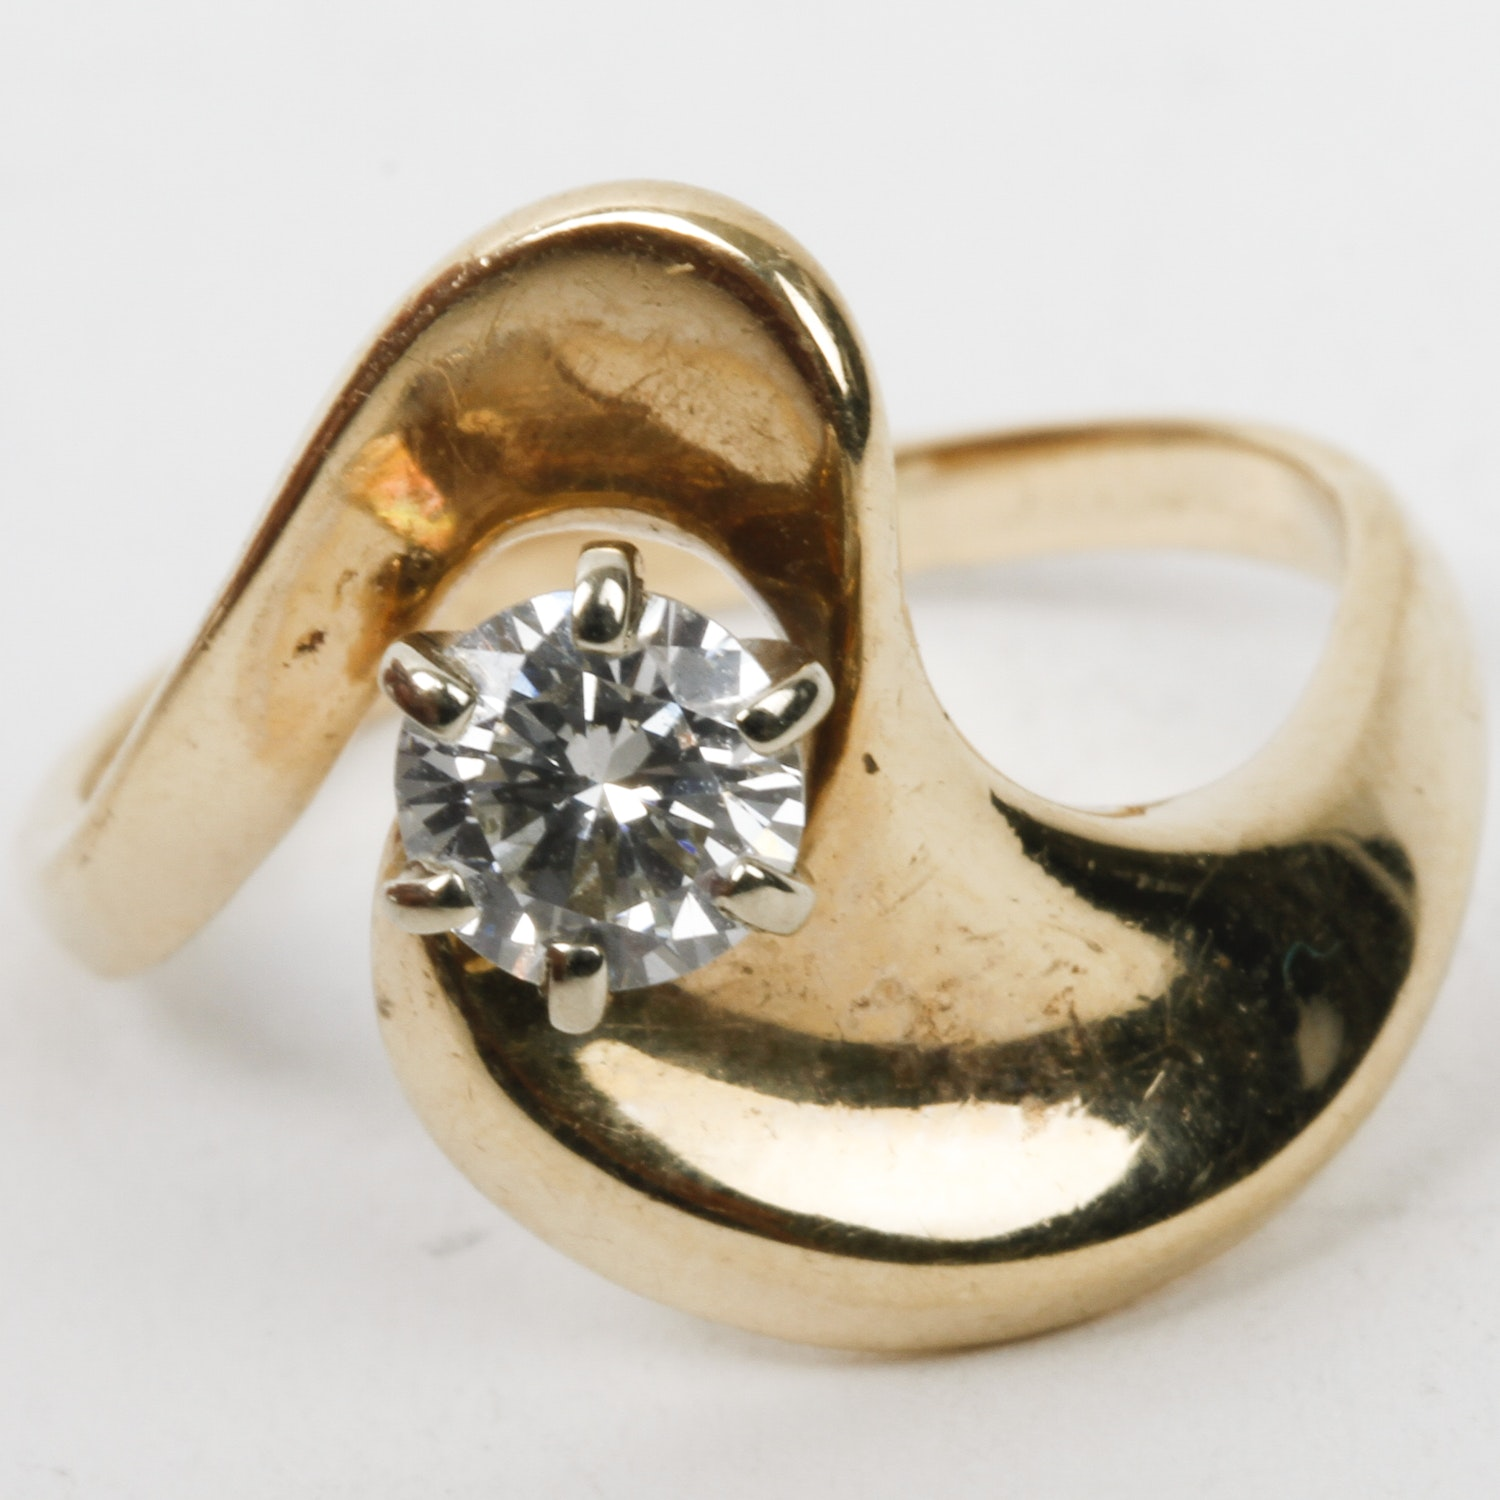 14K Yellow Gold and Diamond Solitaire Bypass Ring